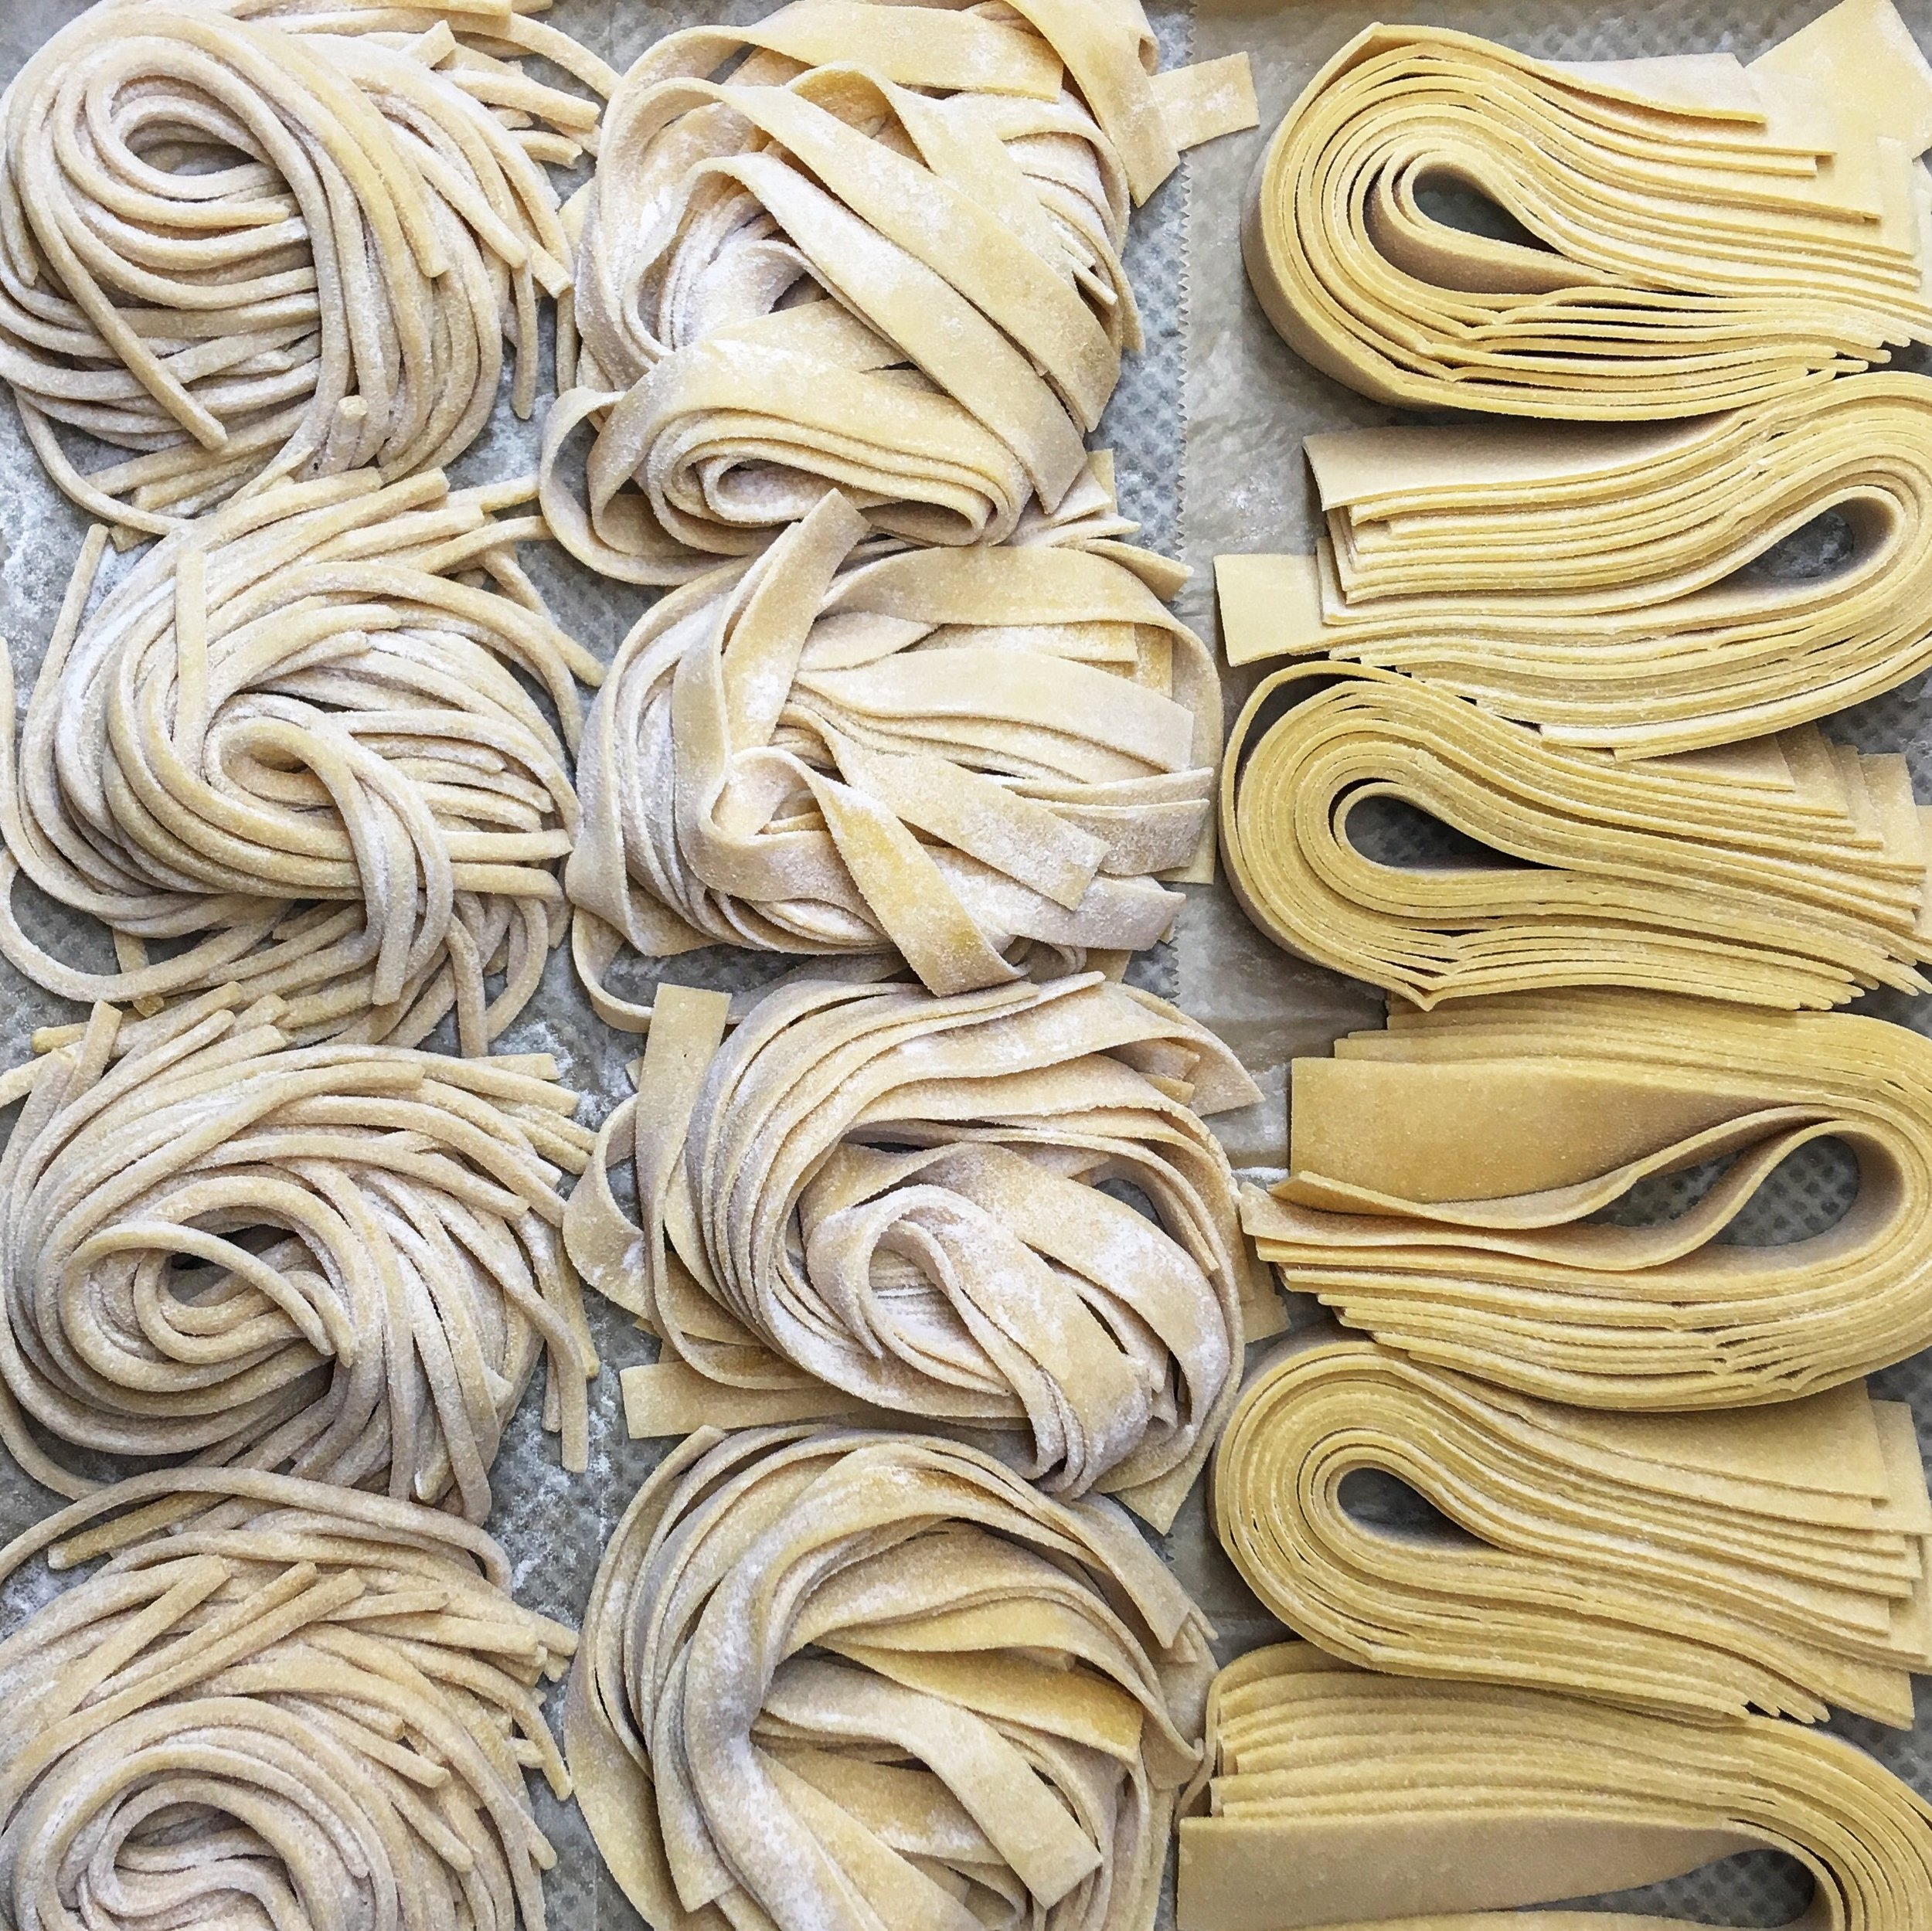 We make pasta fresh every morning